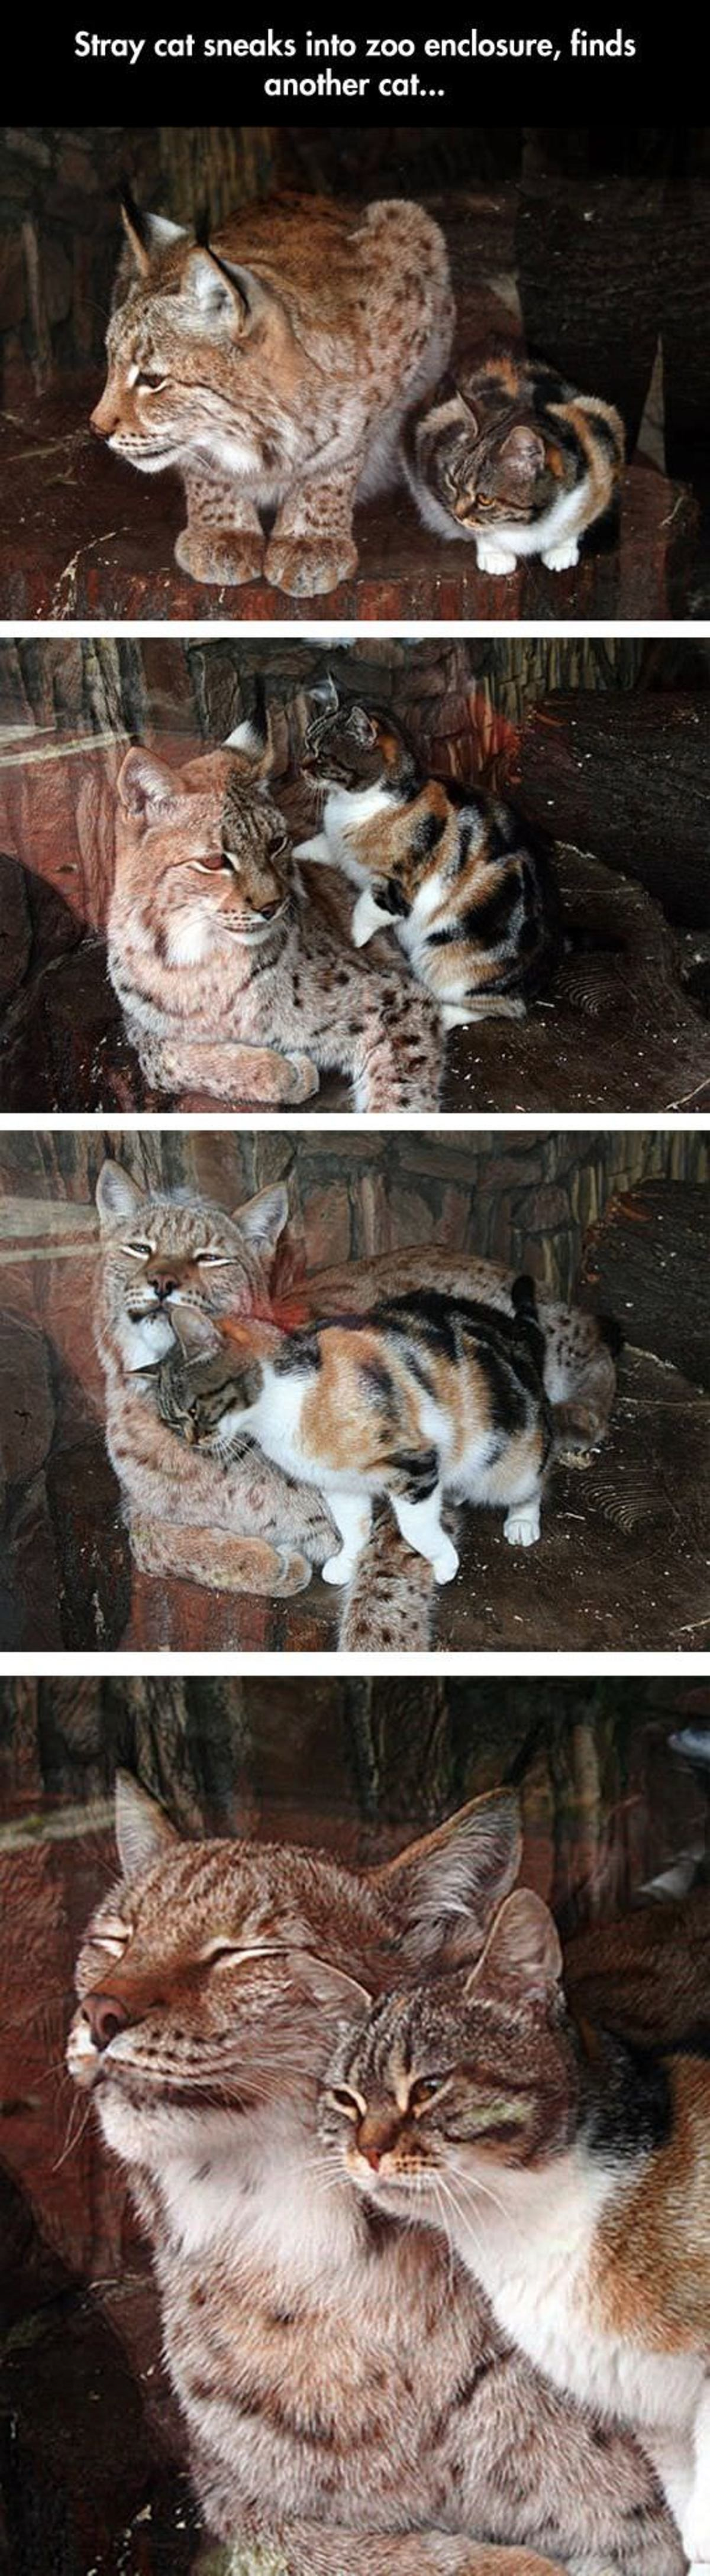 Cell Mates. An European Lynx had a feline friend who came to visit her everyday at the Leningrad (St Petersburg) Zoo, the oldest zoo in Russia. The calico cat b